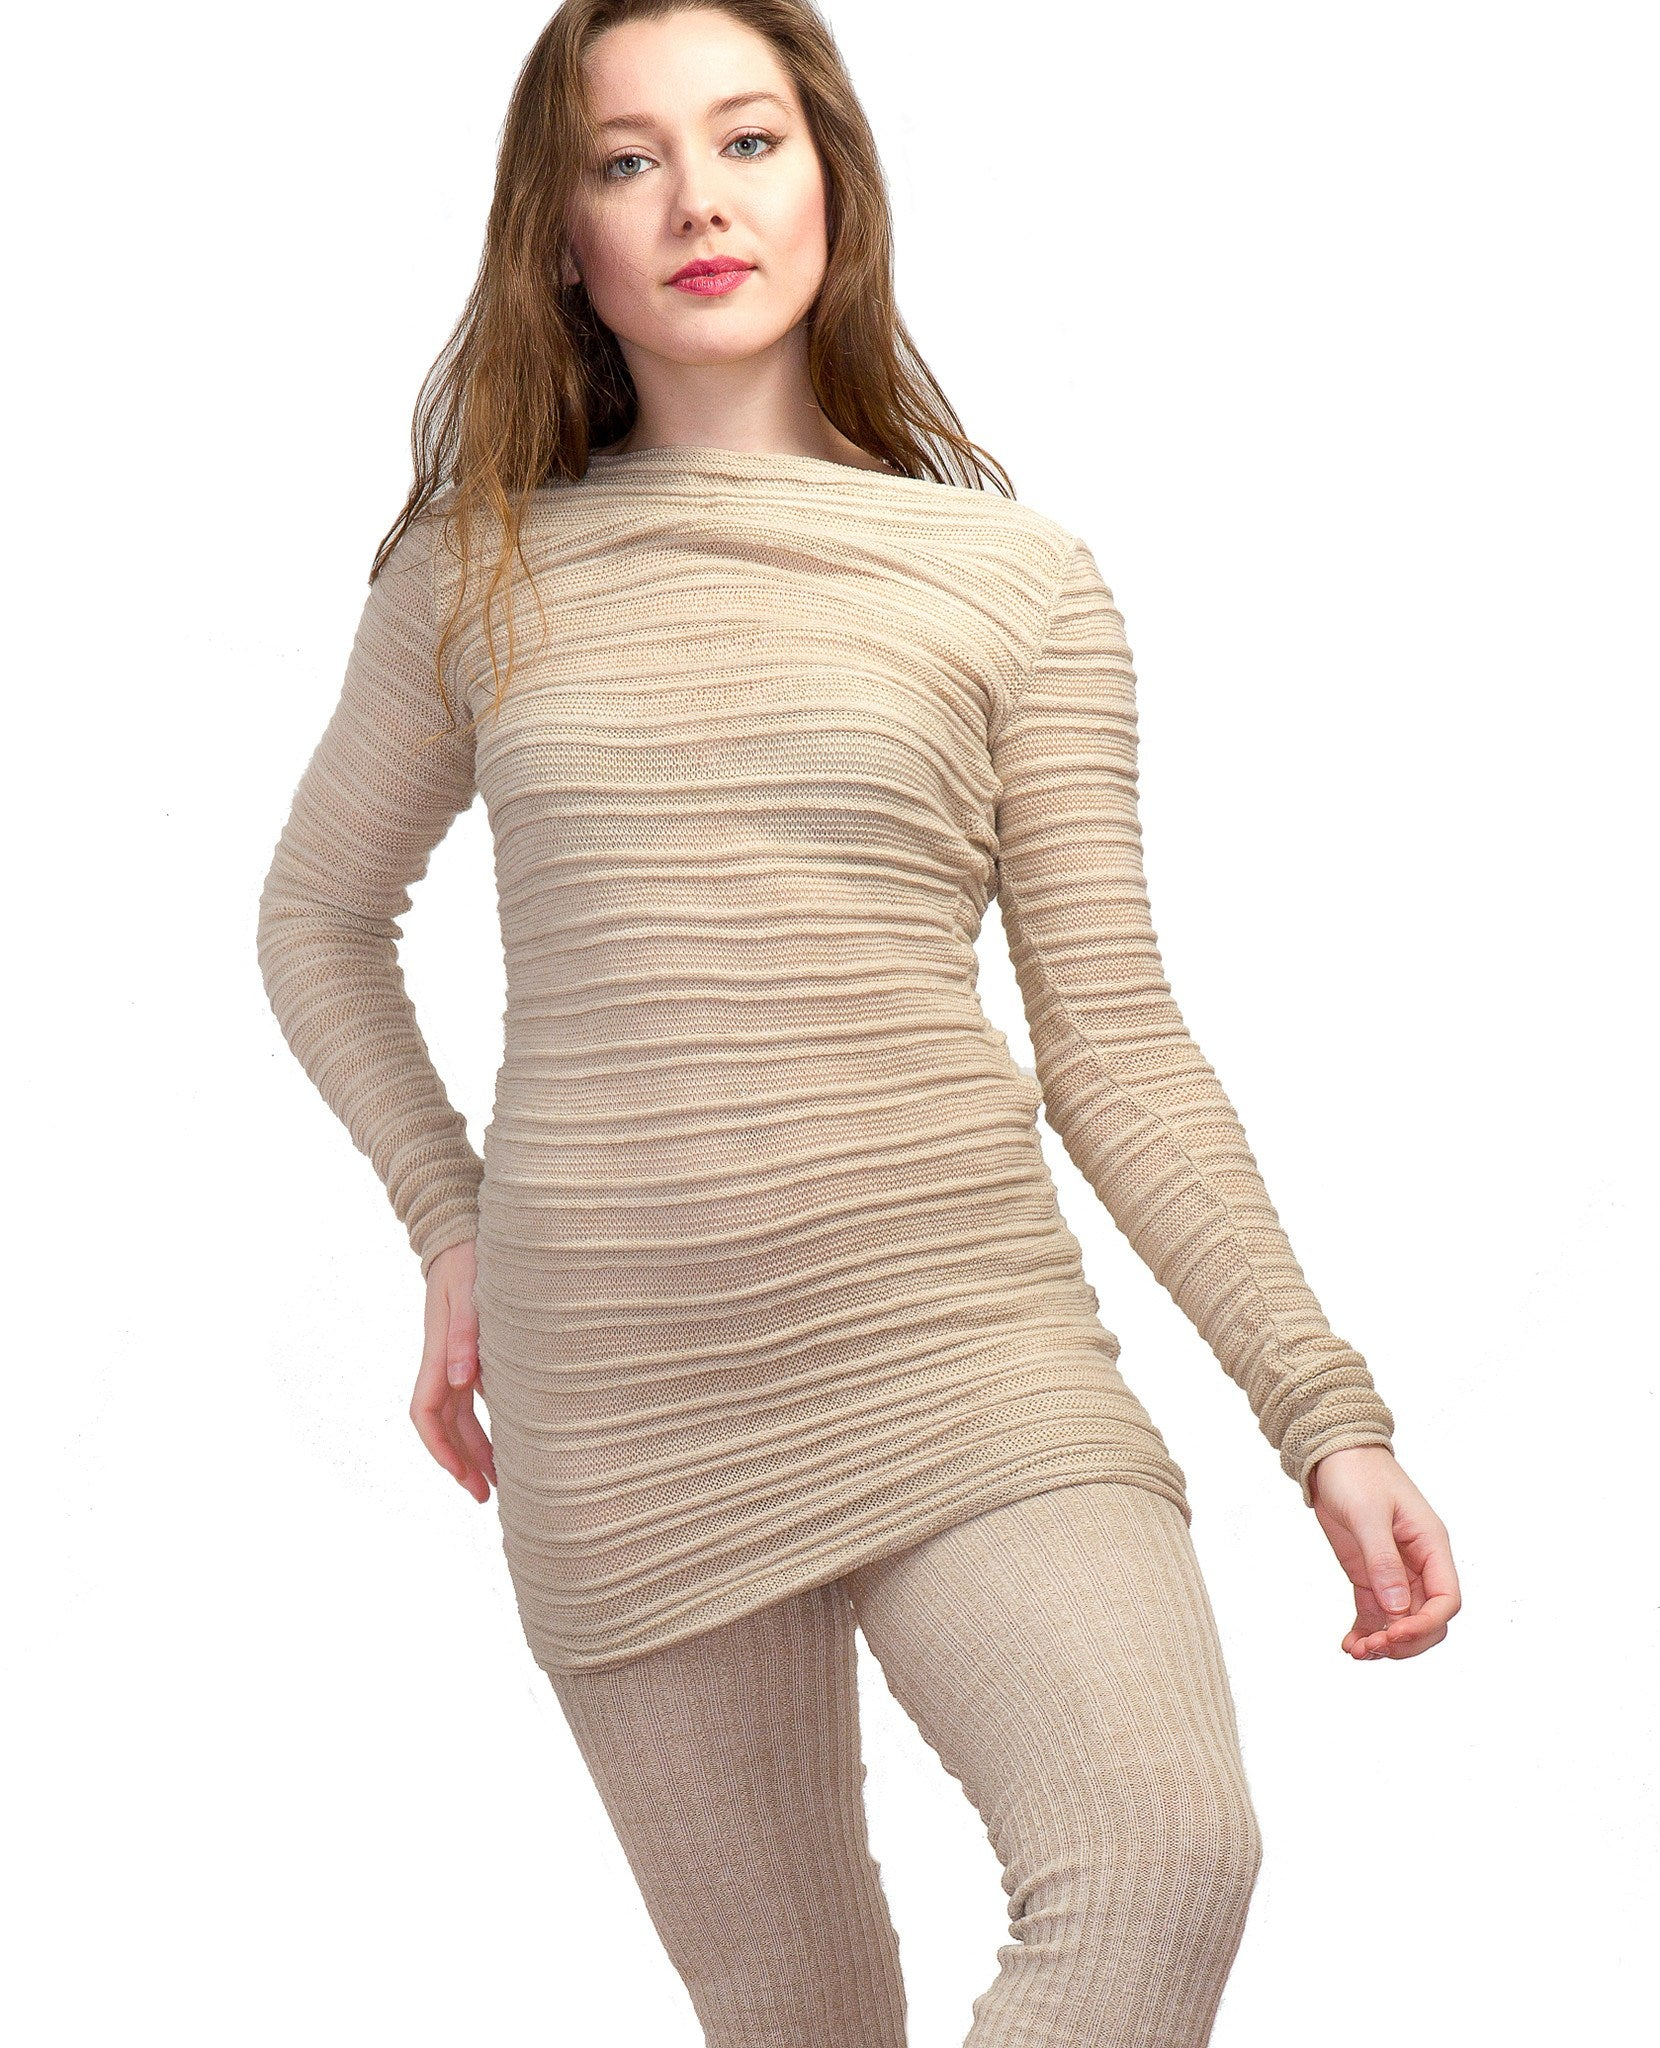 Super Long 40 Inch Thigh High Leg Warmers & Yoga & Dance Mesh Shadow Stripe Sweater Top KD dance @KDdanceNewYork #MadeInUSA - 4